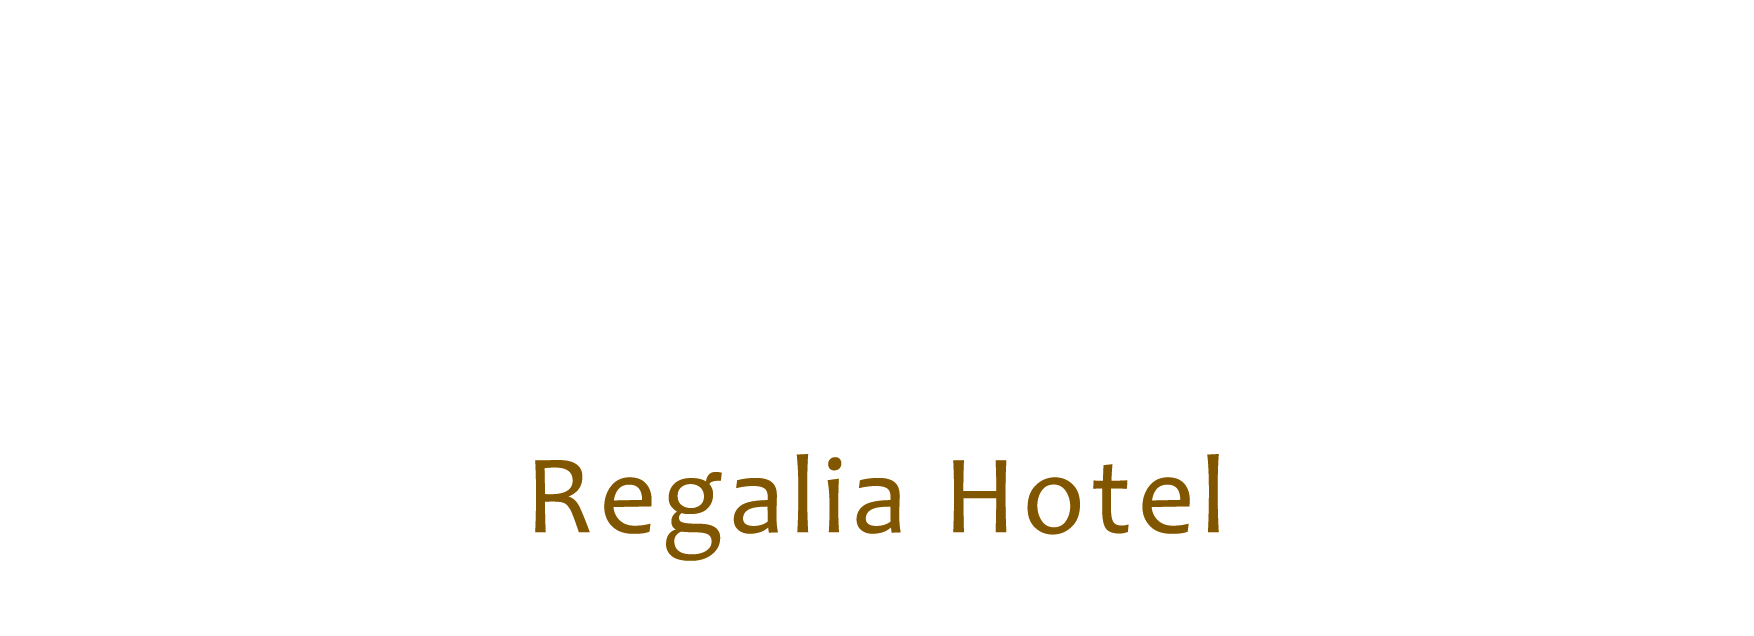 Upper View Regalia Hotel